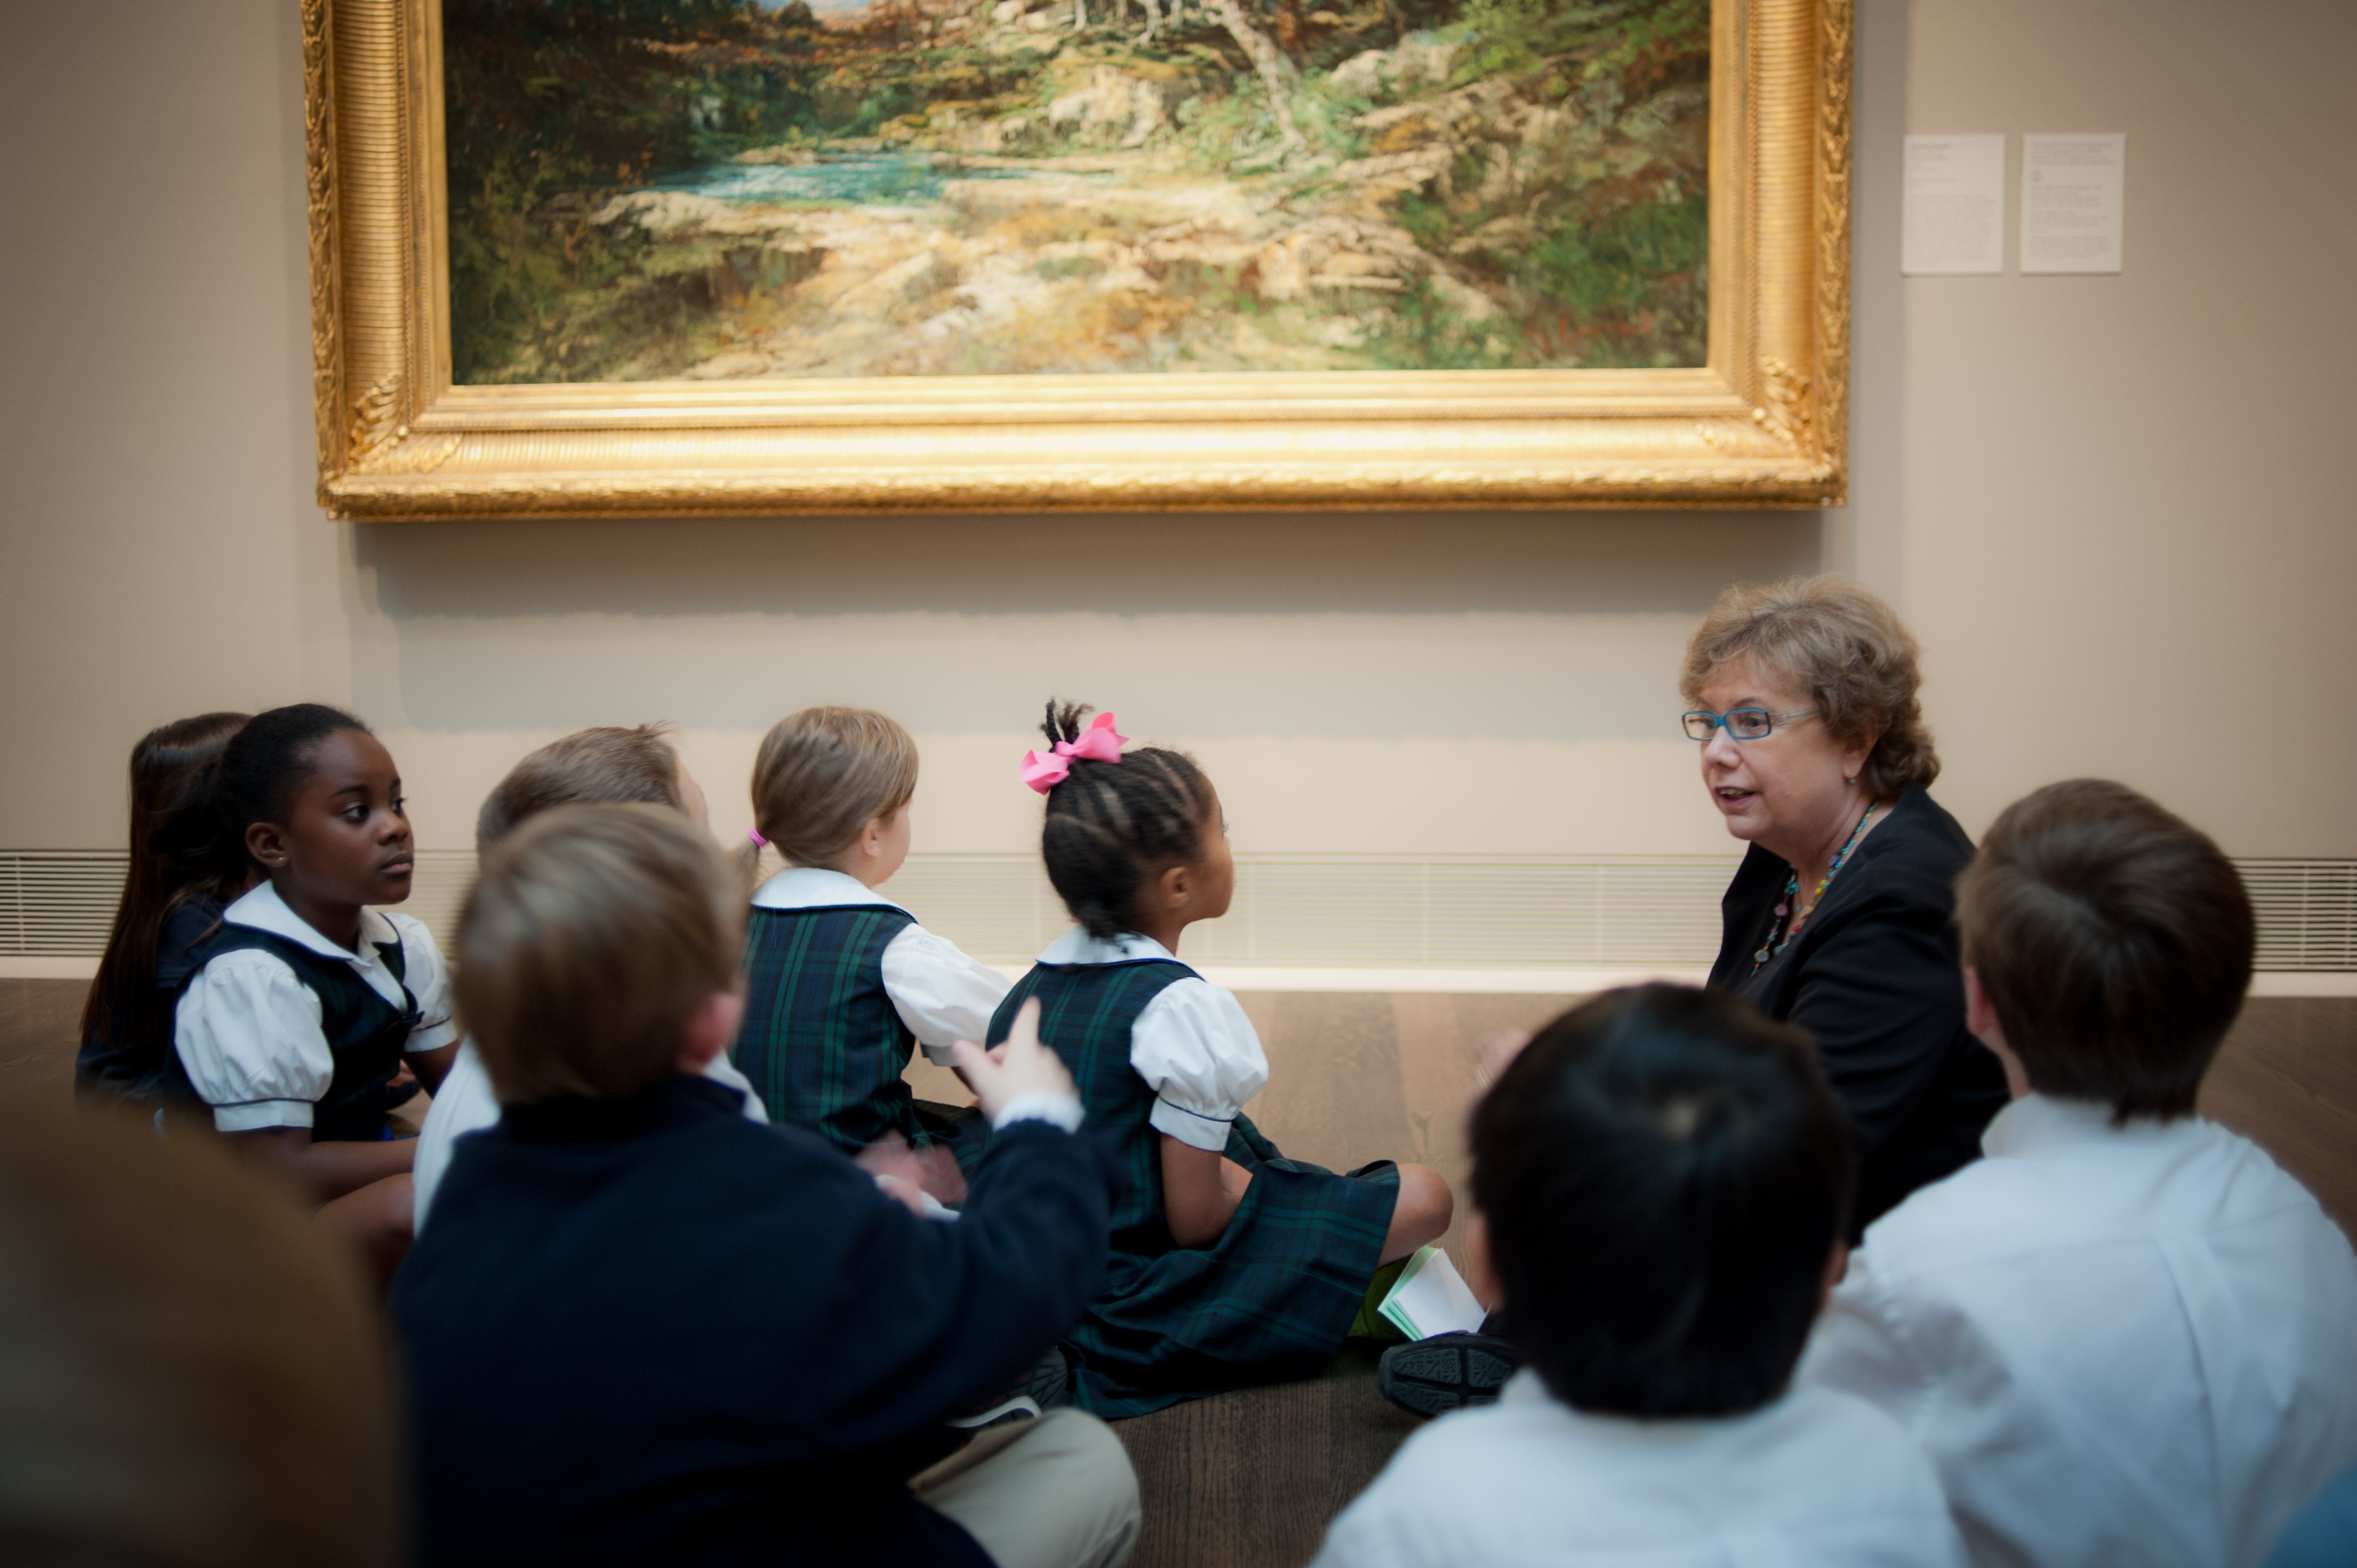 Docents At The Mfah The Museum Of Fine Arts Houston